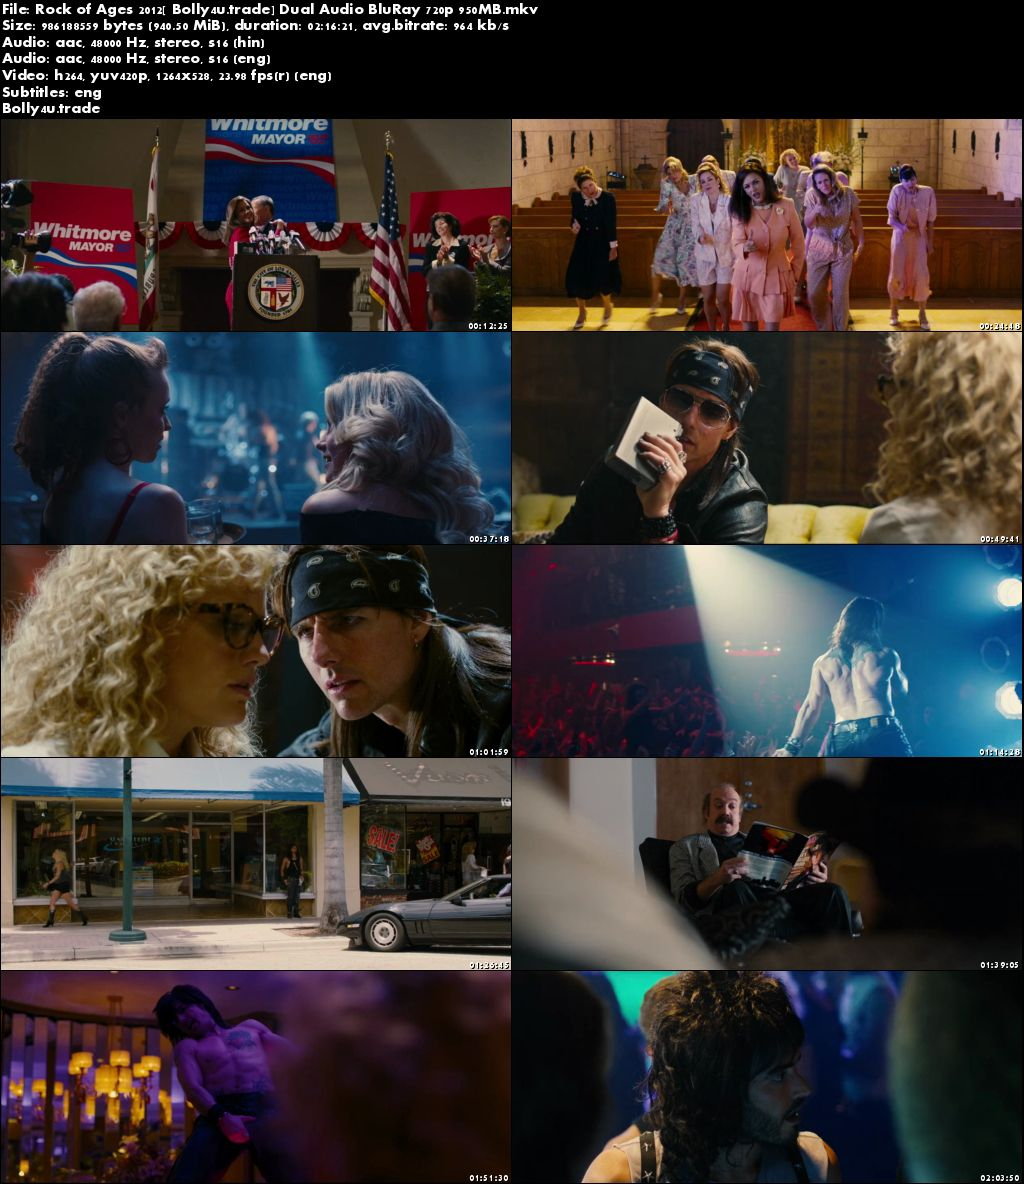 Rock of Ages 2012 BluRay 950Mb Hindi Dual Audio 720p Download